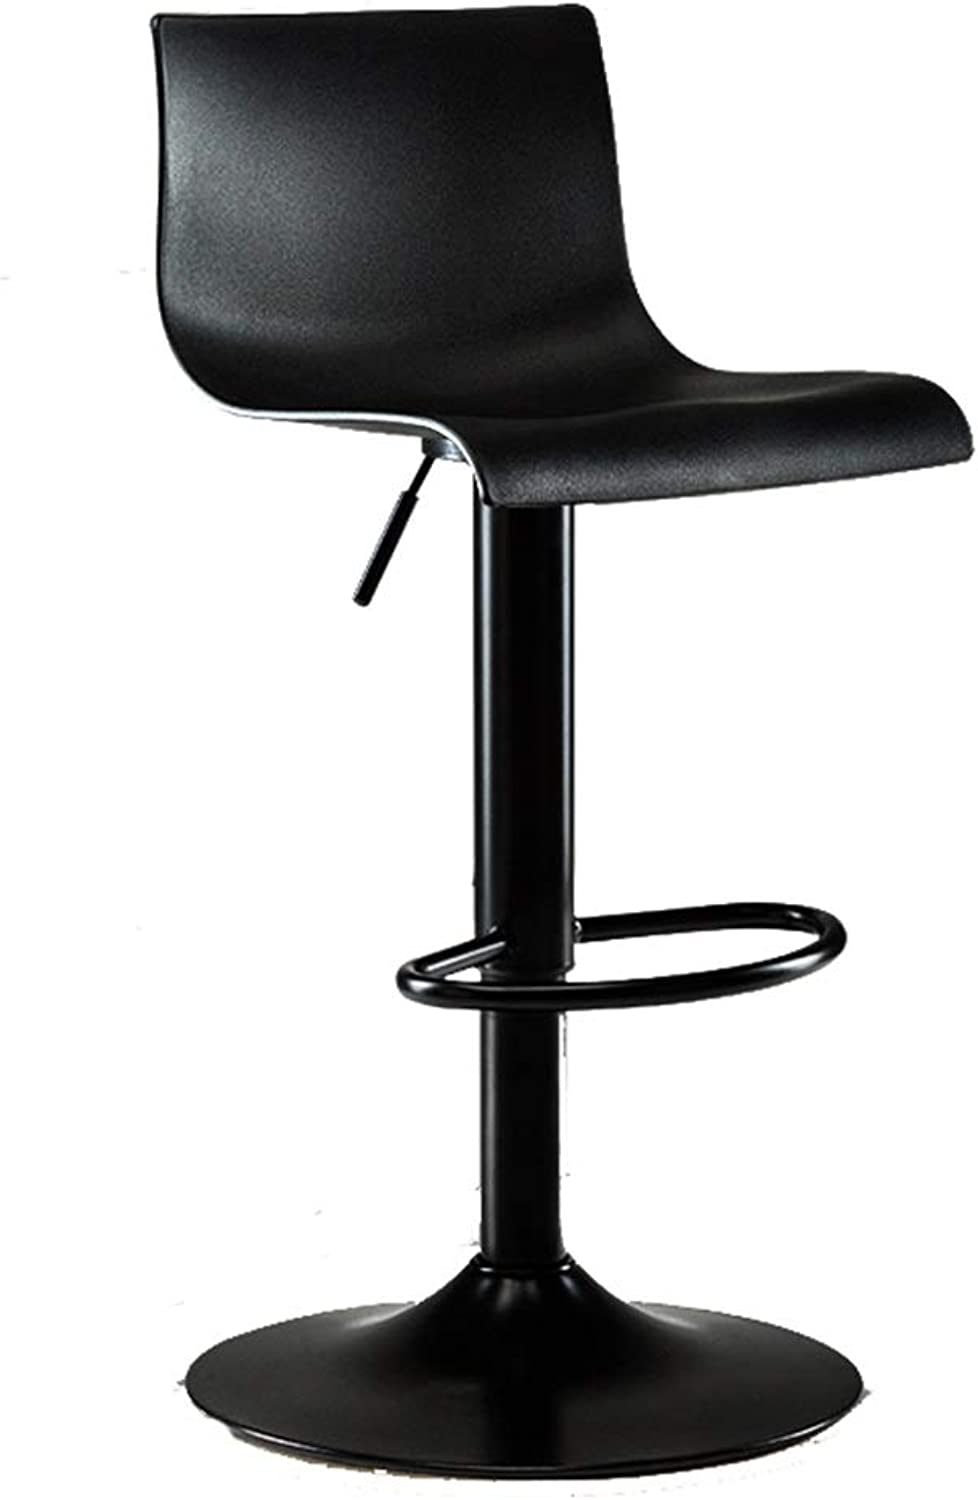 Counter bar Chair, Large backrest Metal Plastic High Stool The Company Rest Area Bar Stool Kitchen Living Room Chair Height 90-120CM (color   Black)